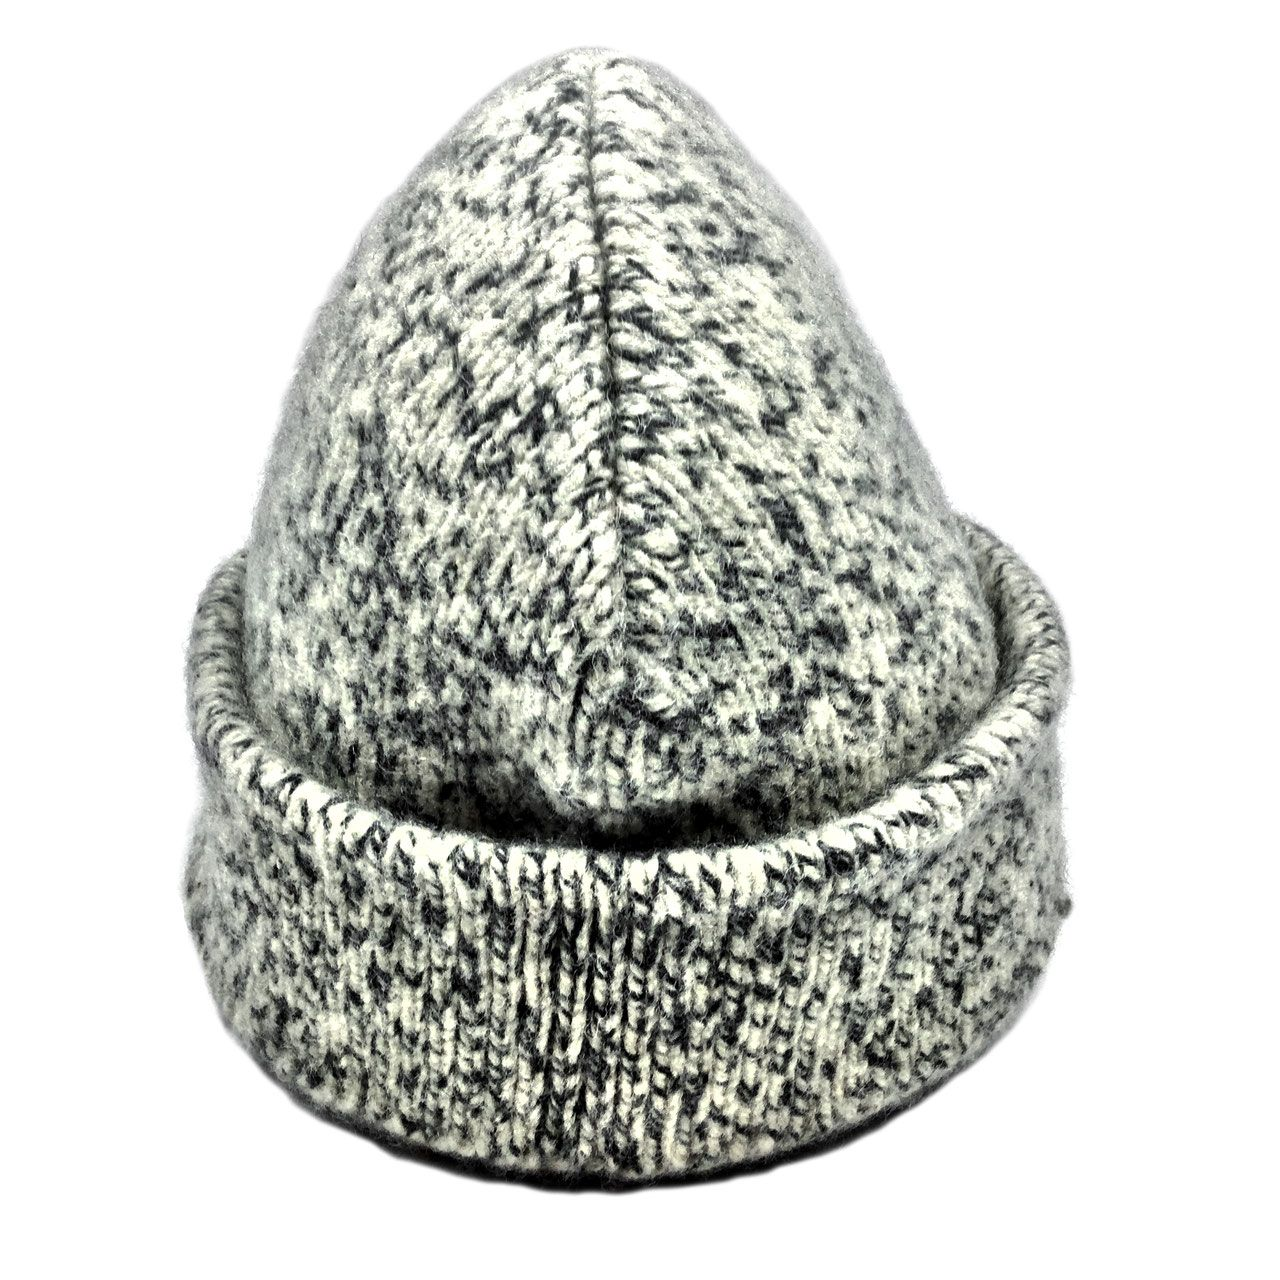 9f16a42e9bb44 Dachstein Woolwear Warm Wool Hat - Sweater Chalet